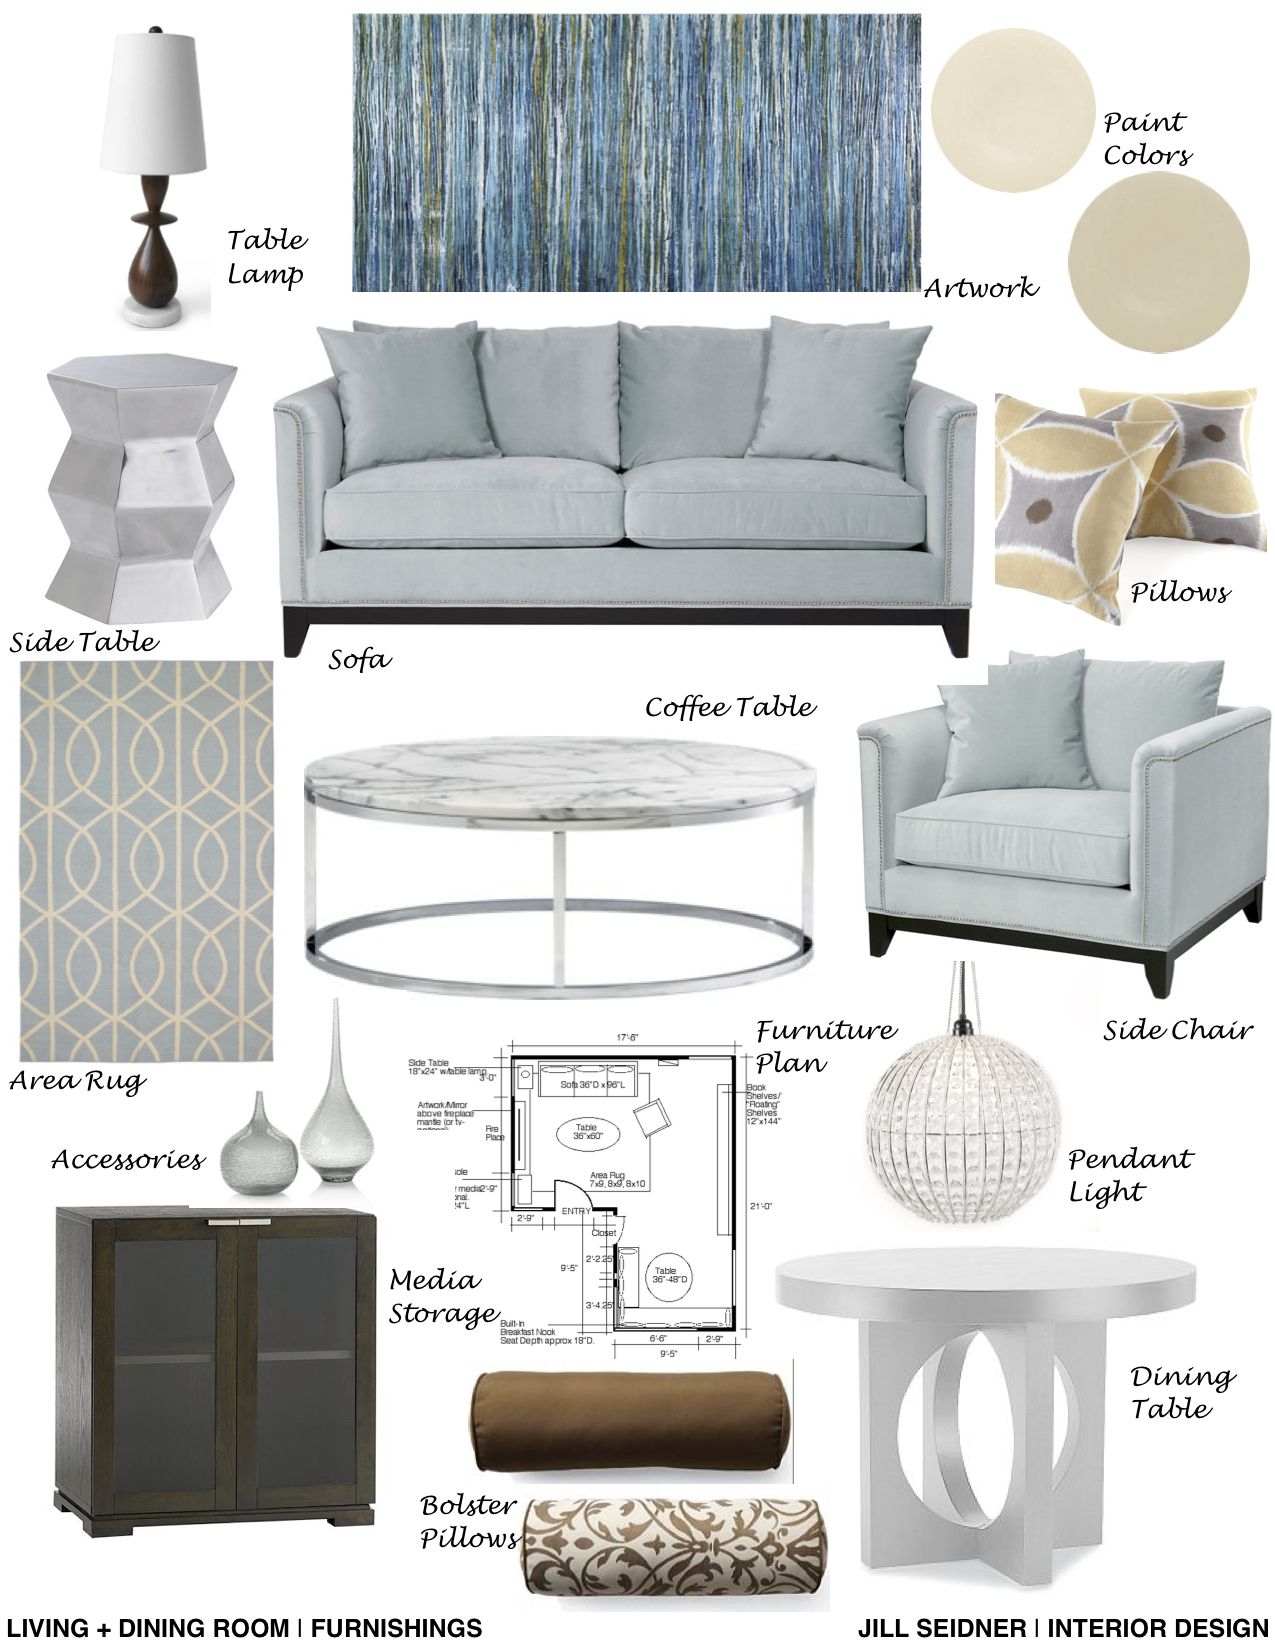 Living room furnishings concept board jill seidner for Room design concept